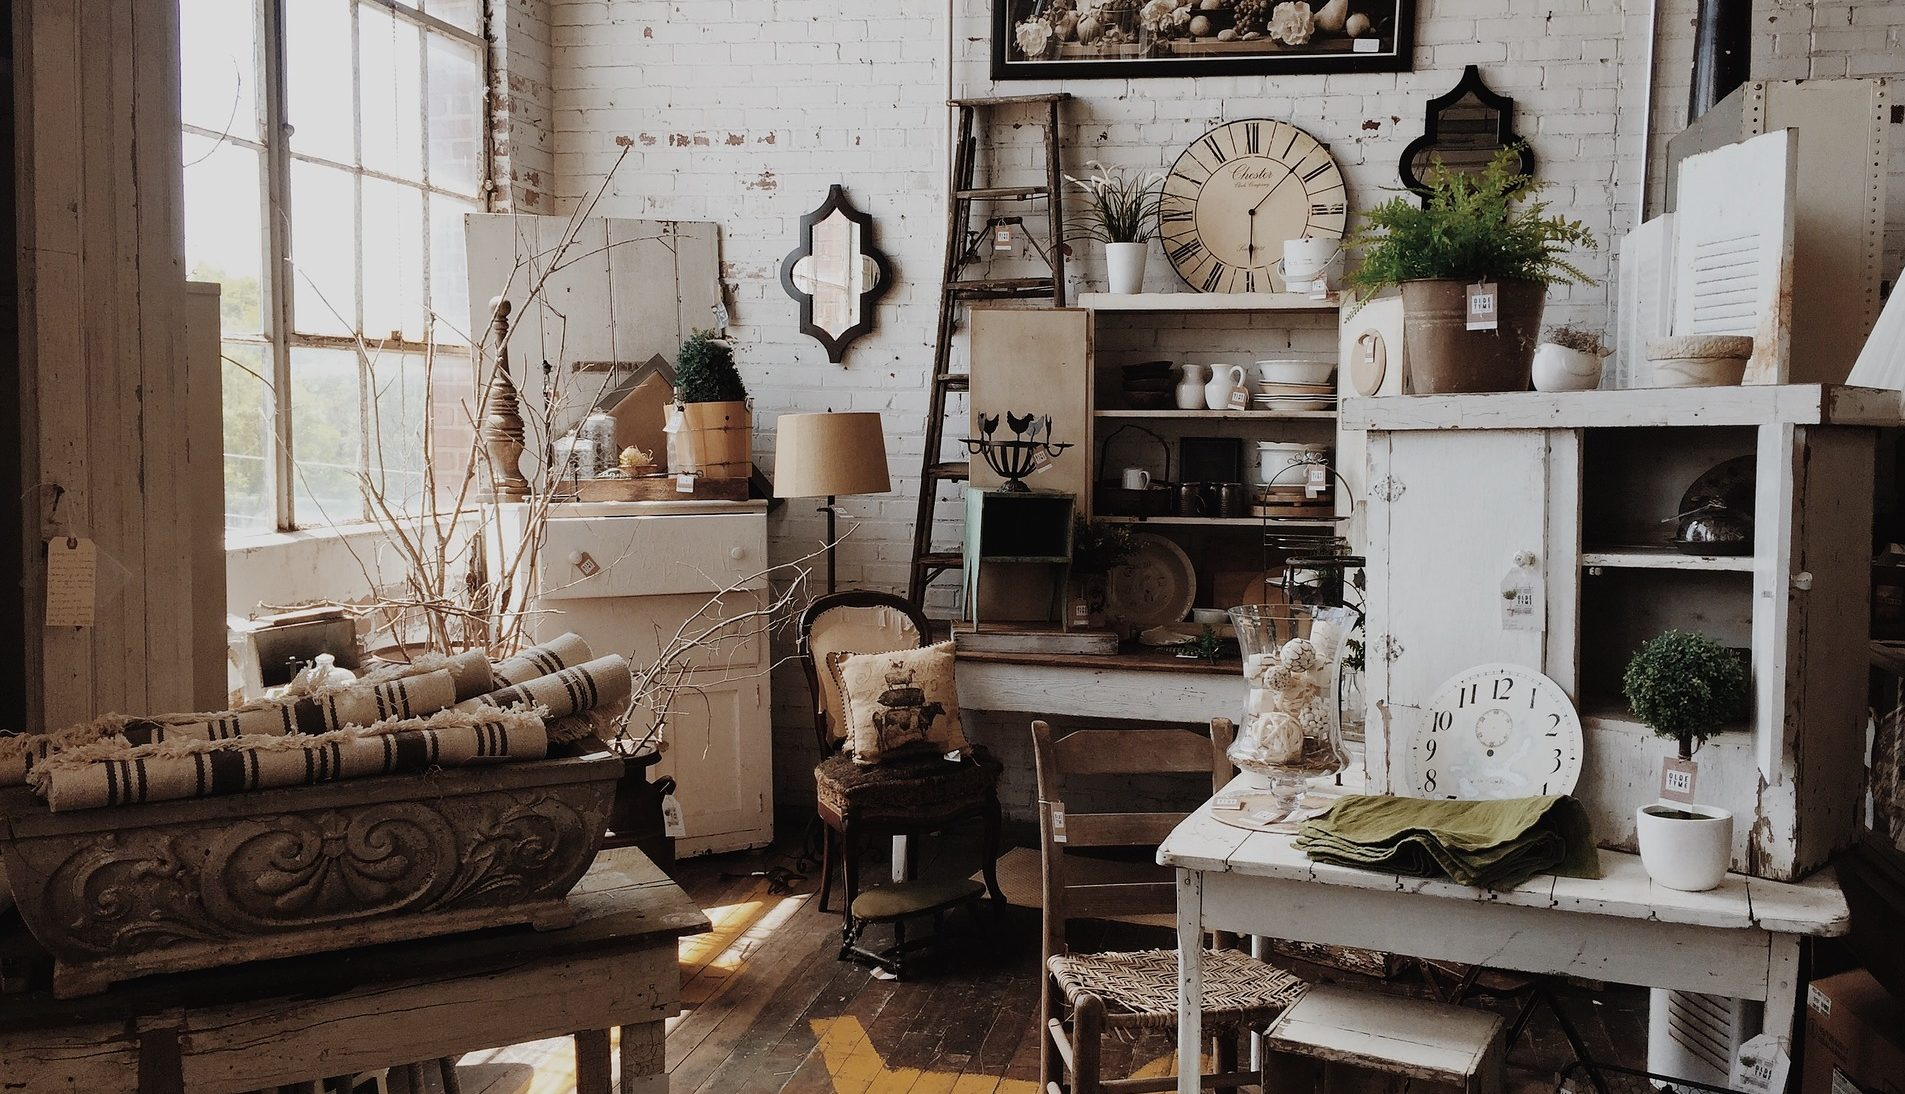 buying second hand furniture